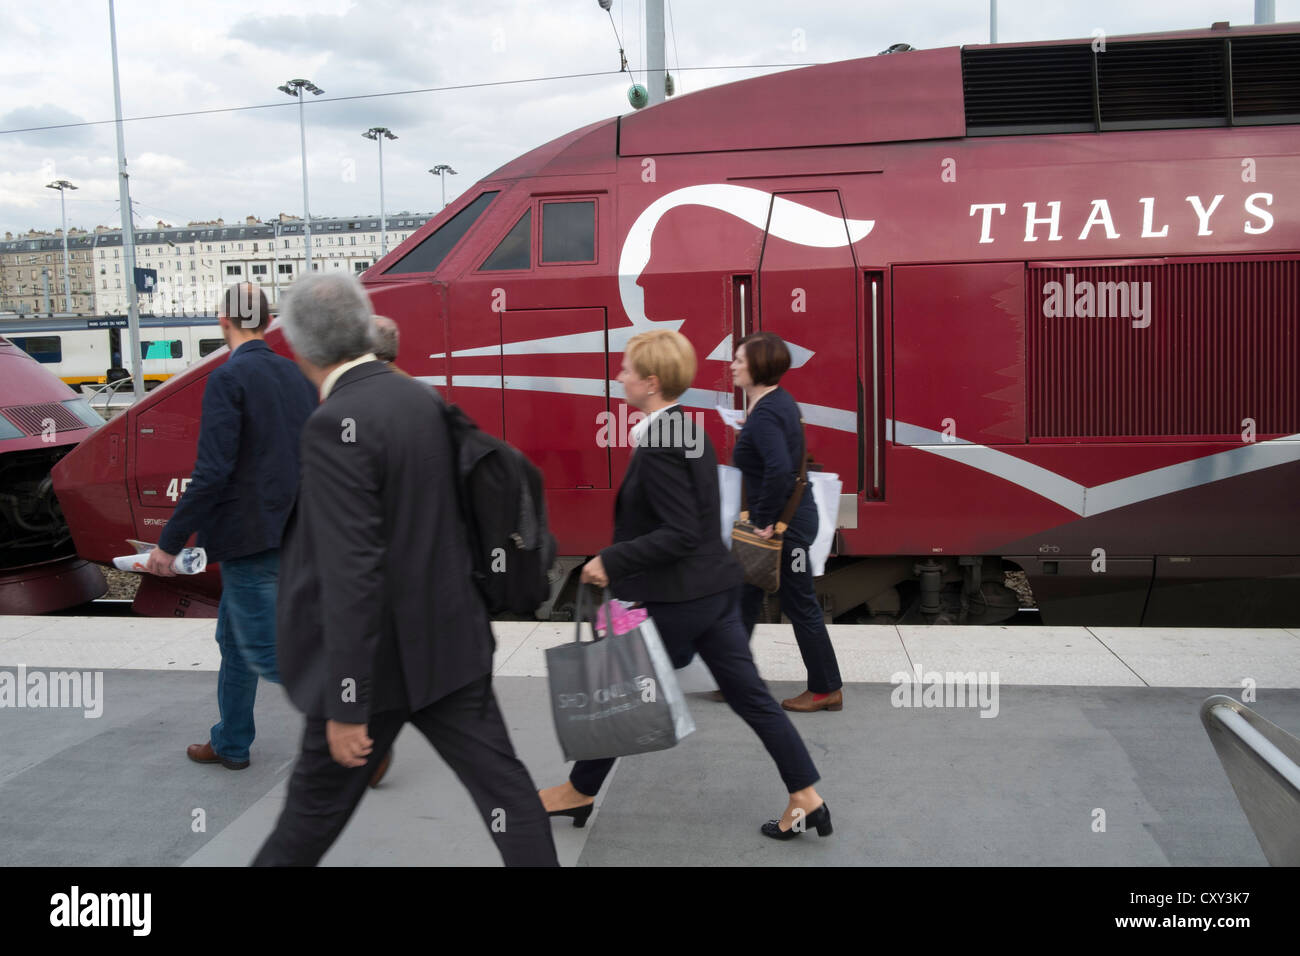 Passengers on platform next to Thalys high speed train at Gare du nord station in Paris France - Stock Image